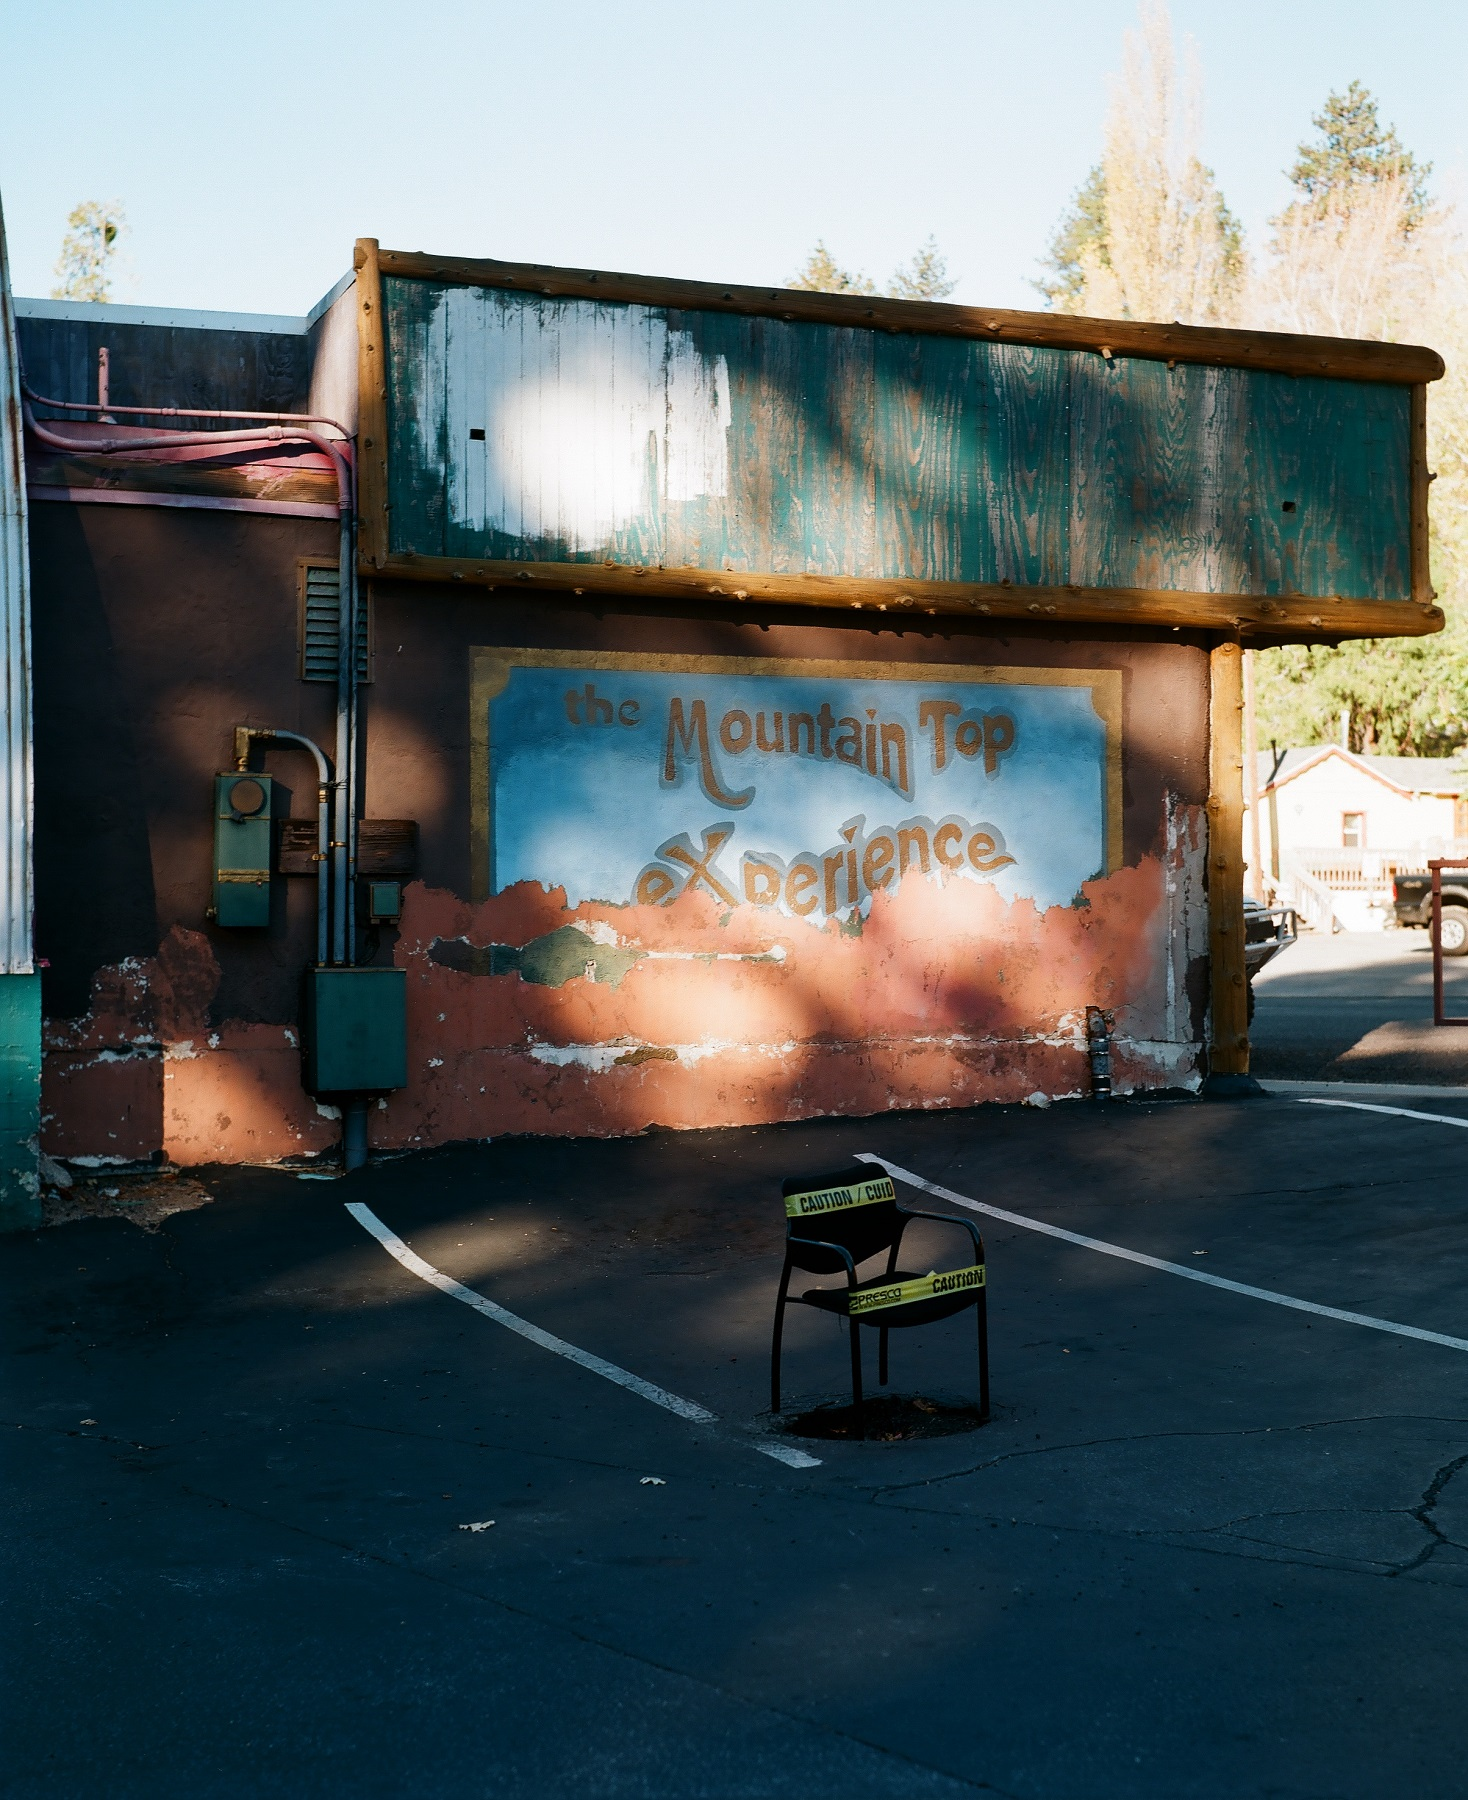 Crestline, California_Mamiya Super 23, 3.5f=100m_Kyle Everett Smith.jpg